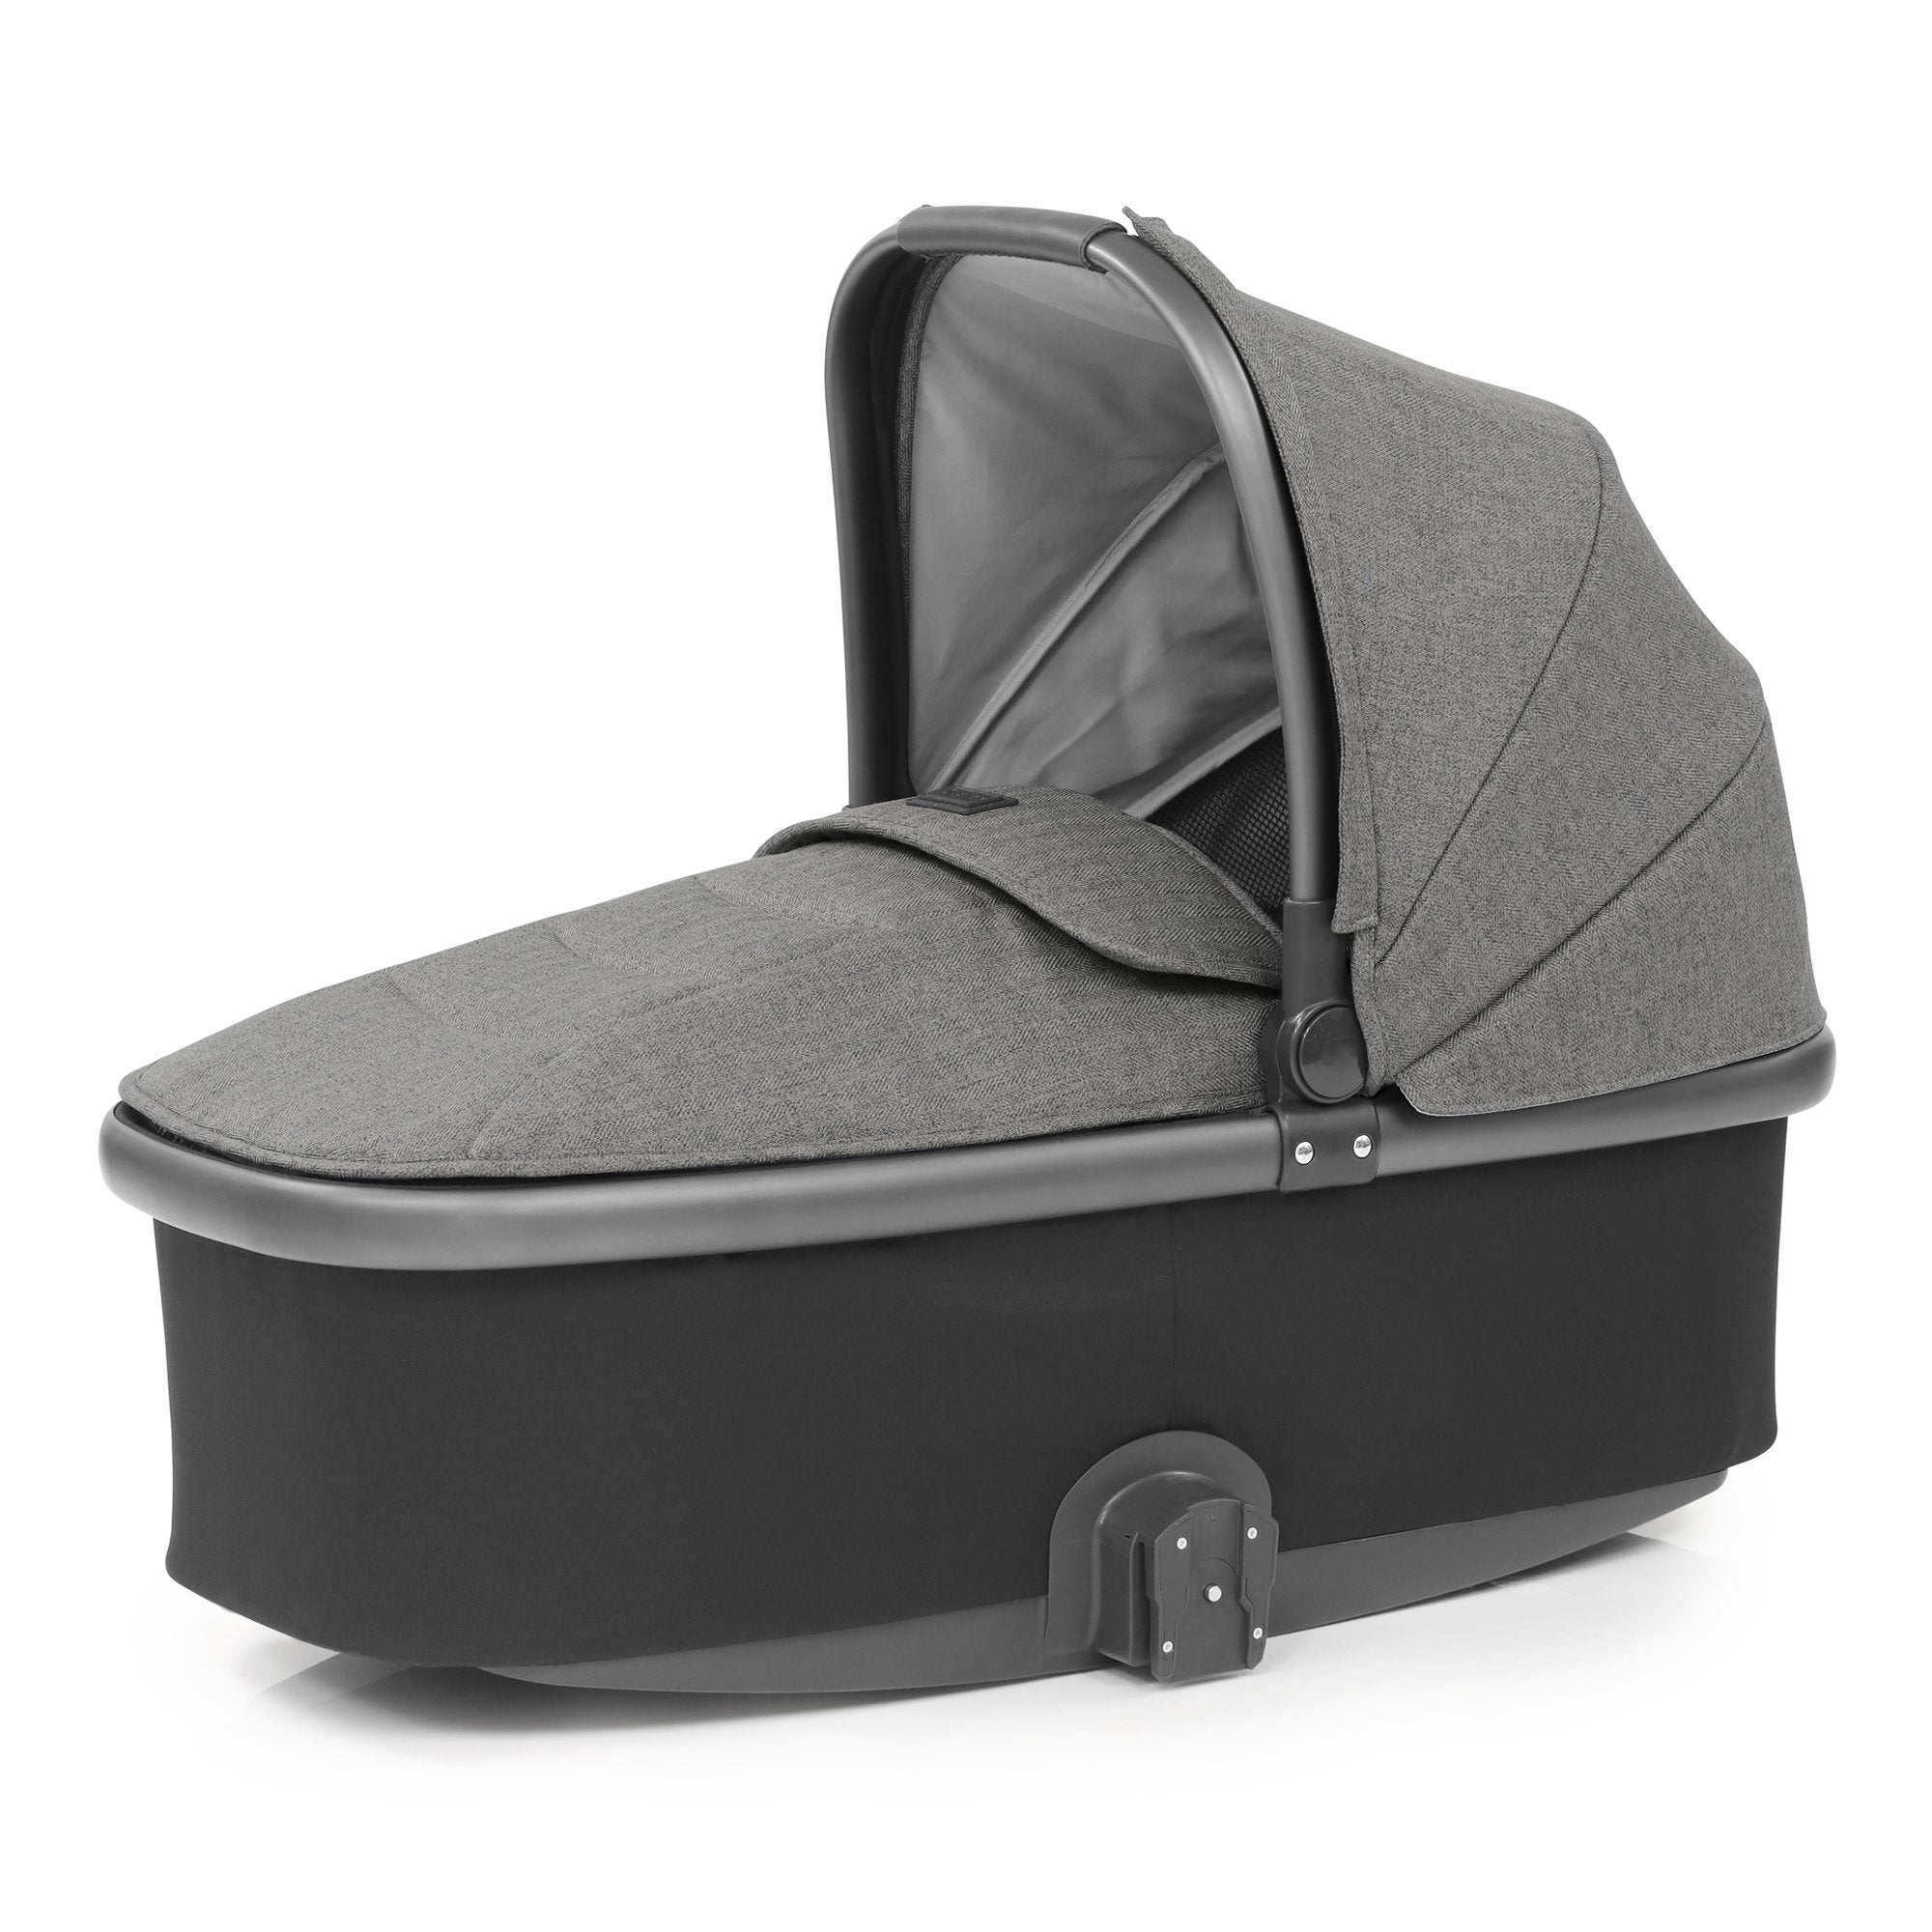 BabyStyle Oyster 3 Mercury (City Grey Chassis) 9-piece Bundle - Pushchair Expert